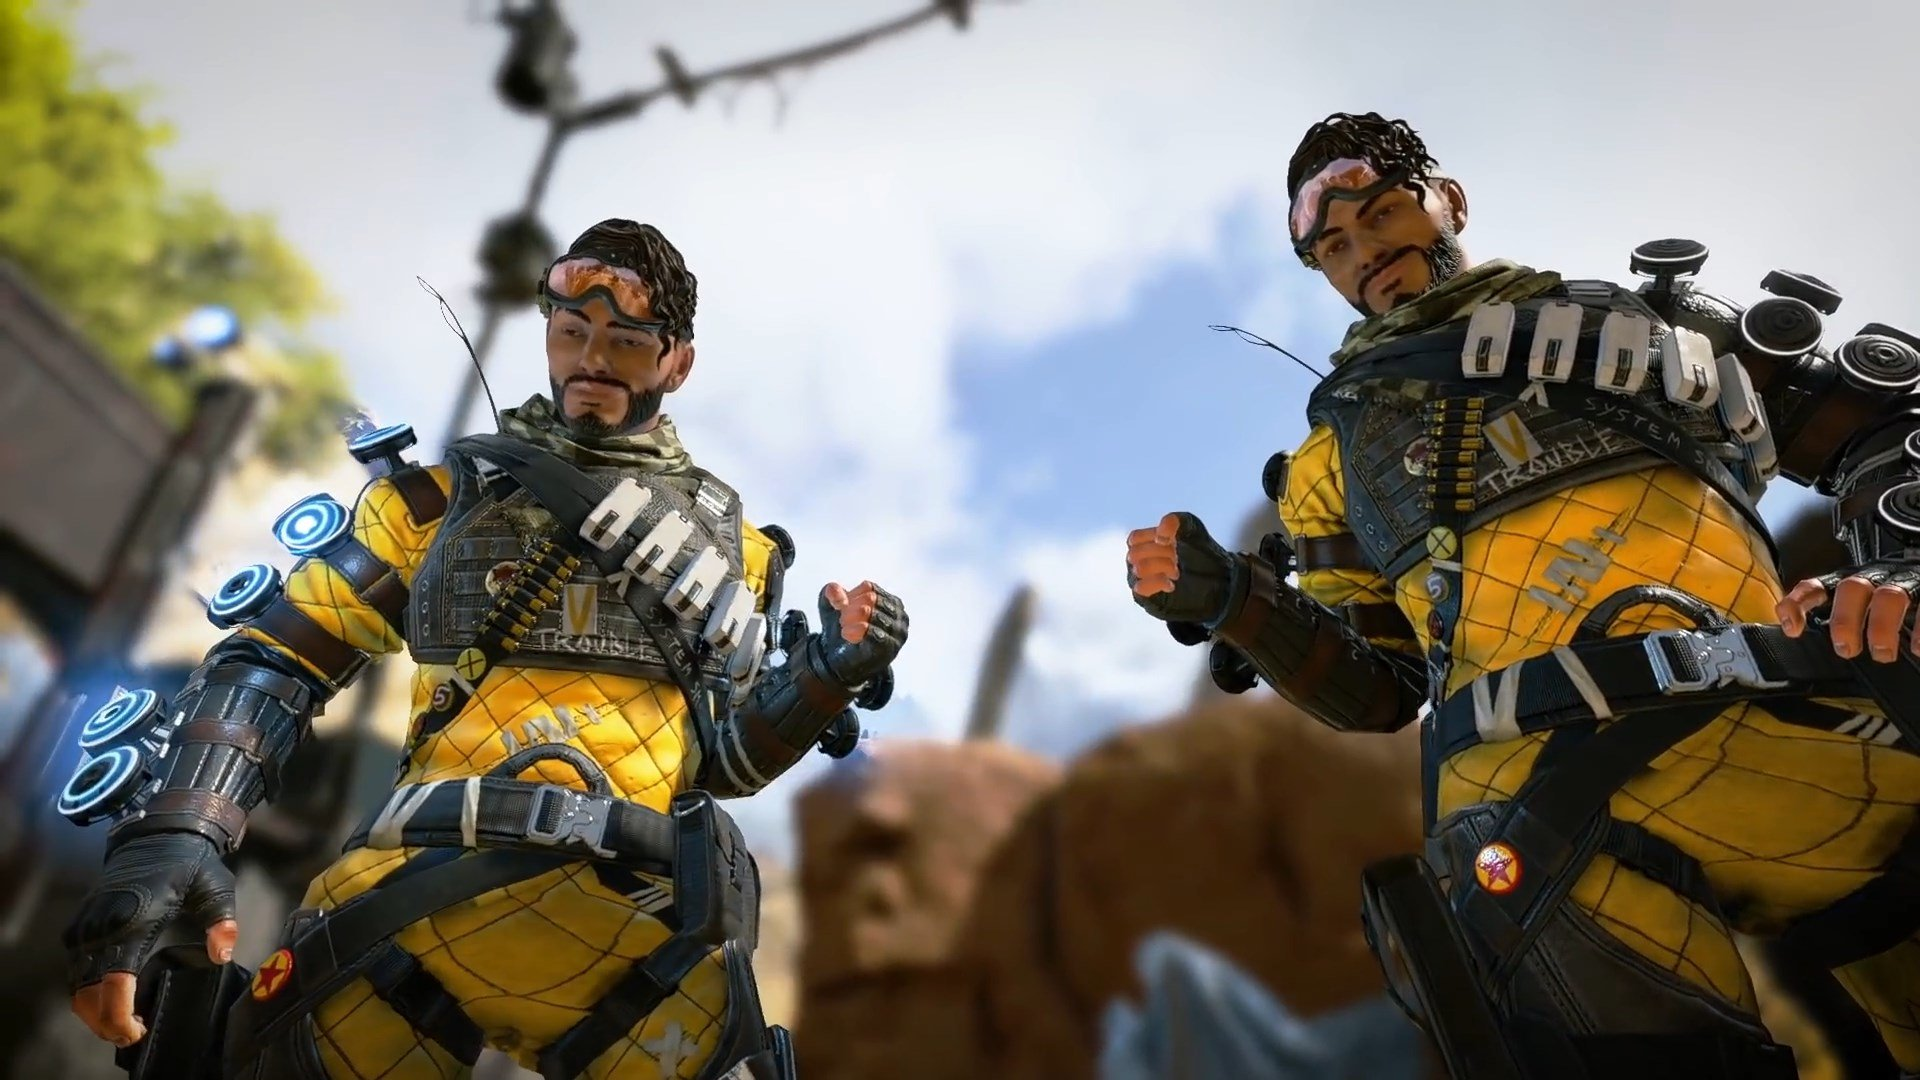 Mirage fist bumping himself in Apex Legends